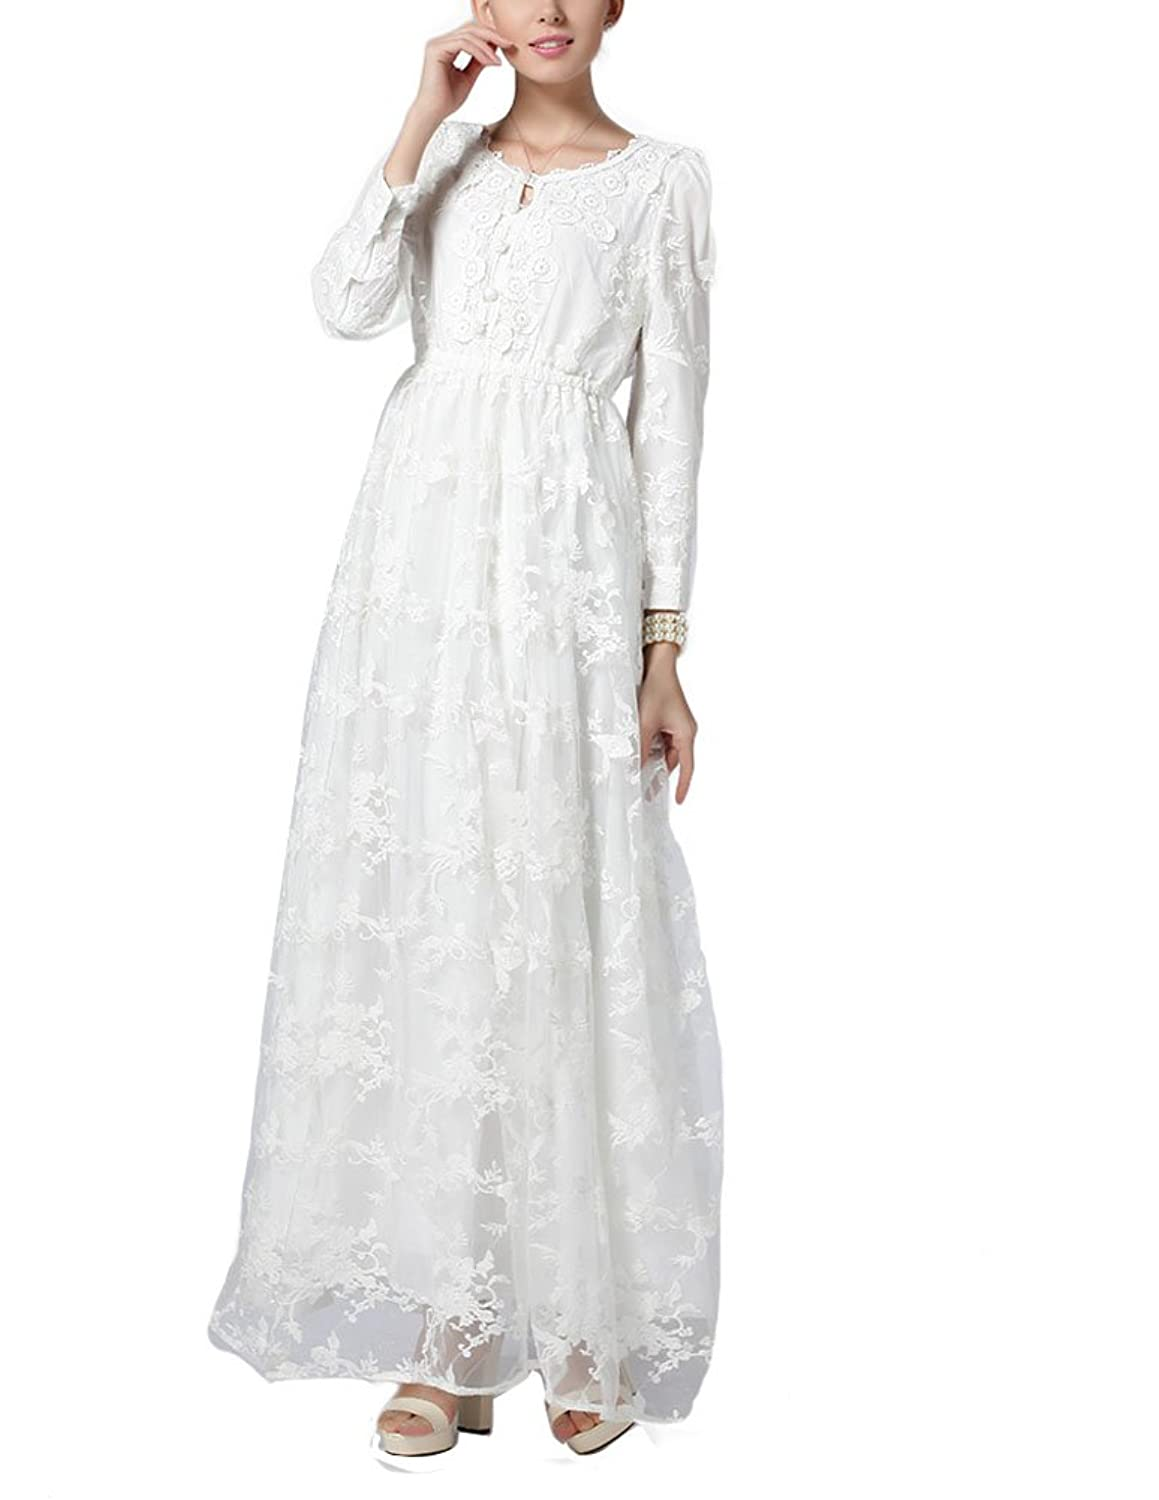 Formal Edwardian Gowns Three Layers Crochet Embroidery Craft Lace Wedding Dress LYQ0156 $49.99 AT vintagedancer.com